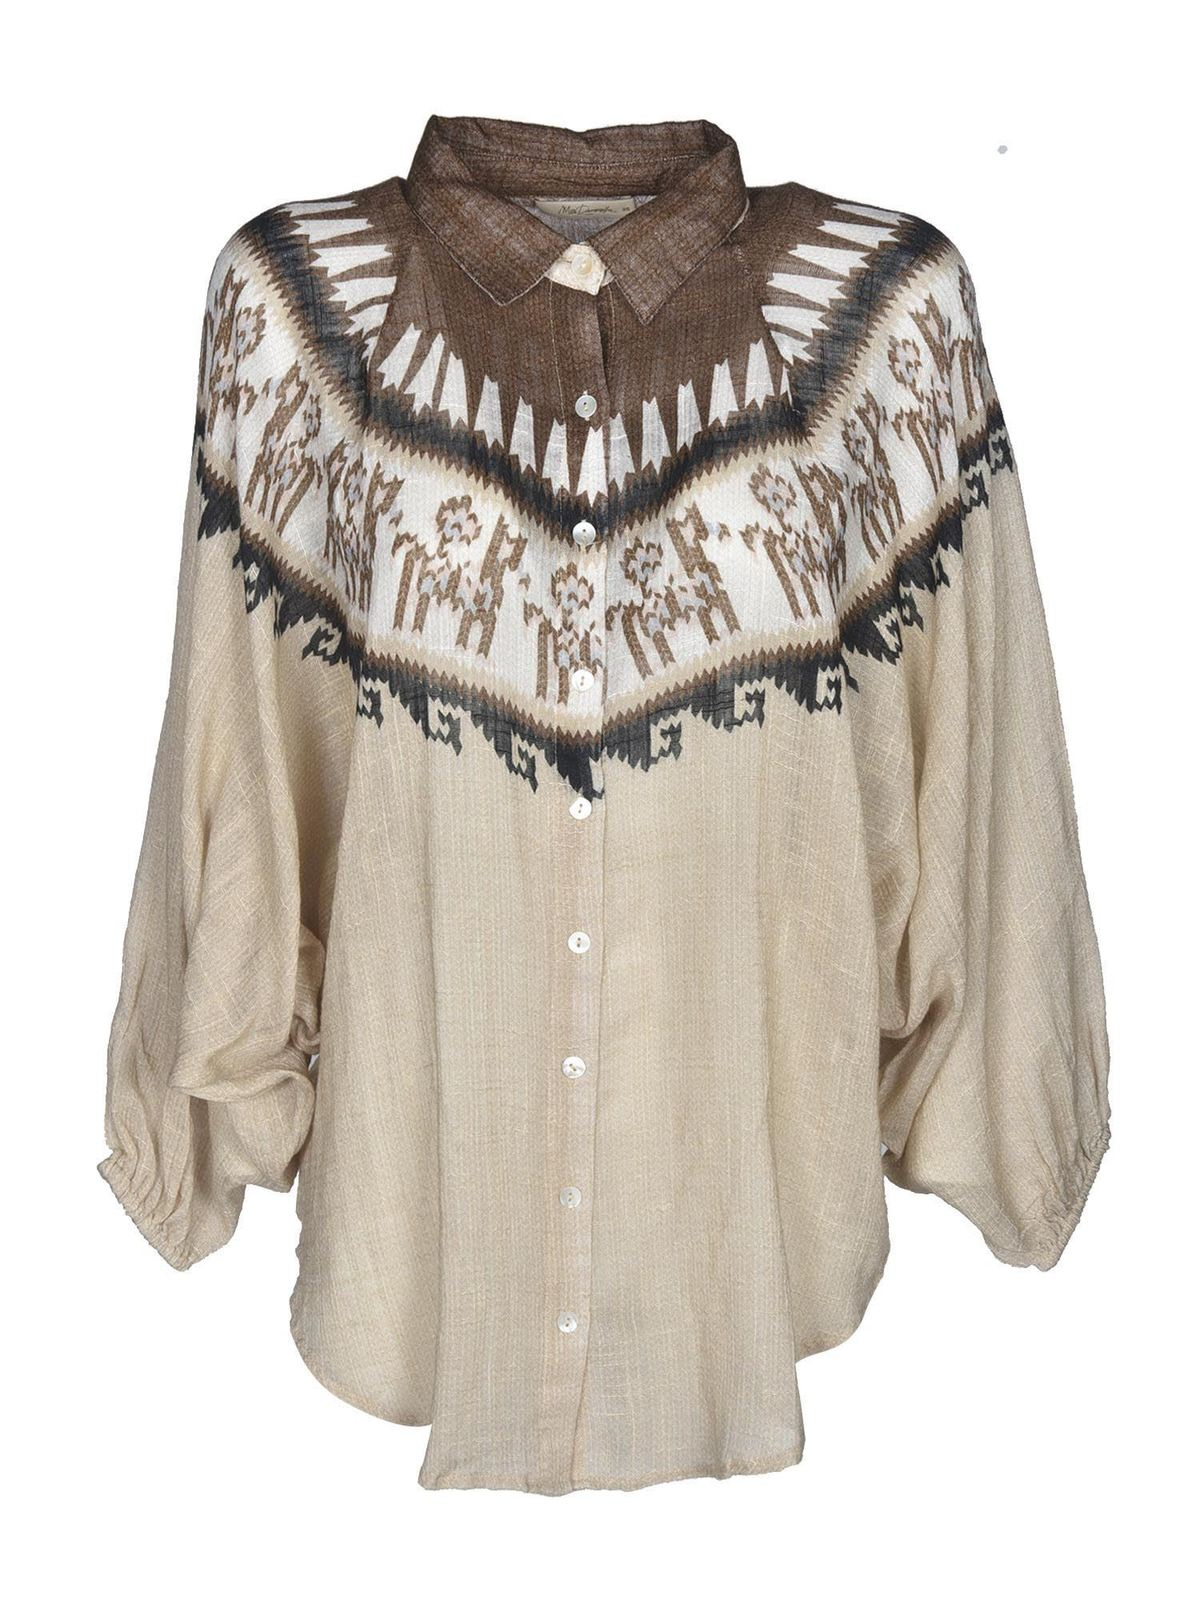 Mes Demoiselles CHEVIN SHIRT IN BEIGE AND BROWN